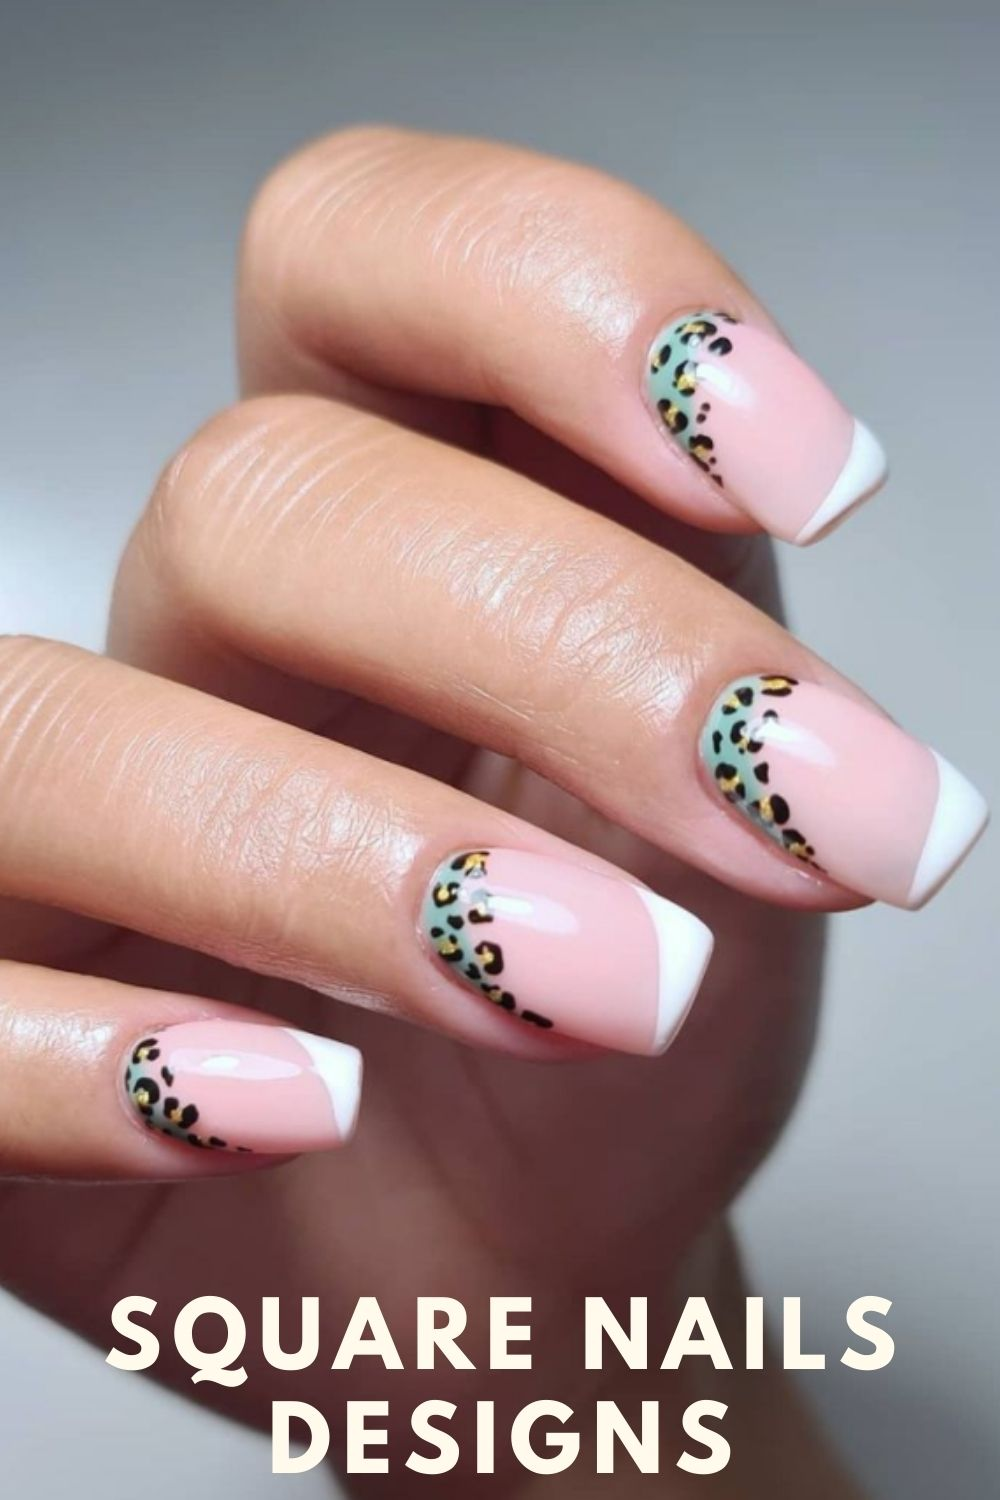 Pink and white ombre nails with leopard